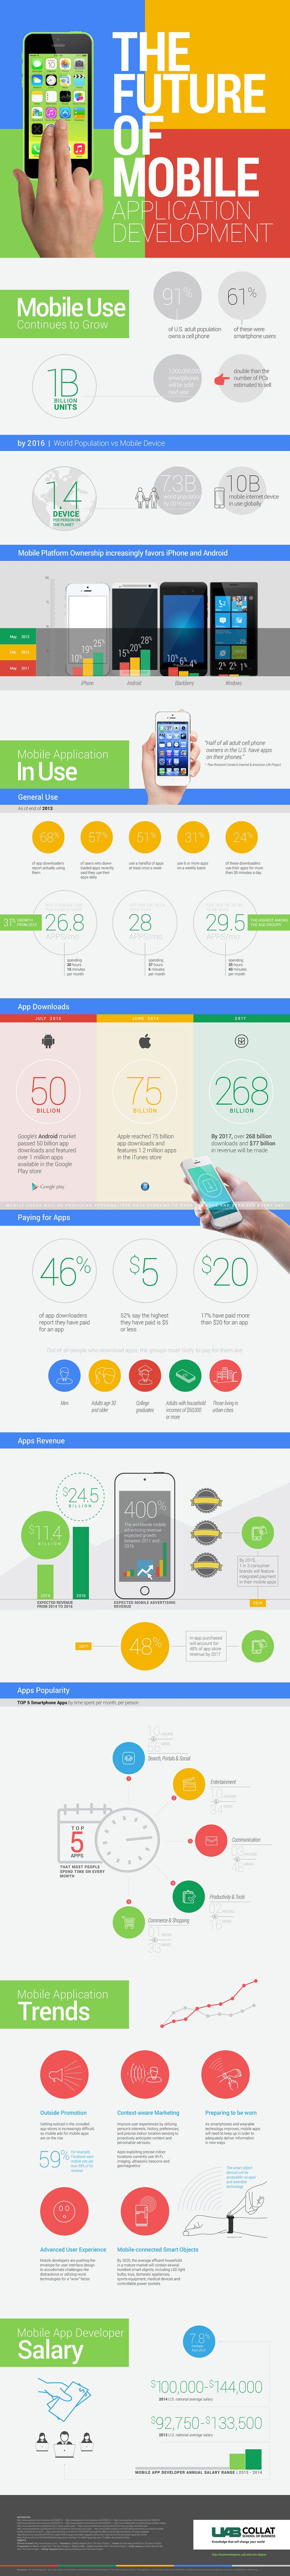 By 2017, the App Market Will Be a $77 Billion Industry (Infographic) (scheduled via http://www.tailwindapp.com?utm_source=pinterest&utm_medium=twpin&utm_content=post2101941&utm_campaign=scheduler_attribution)